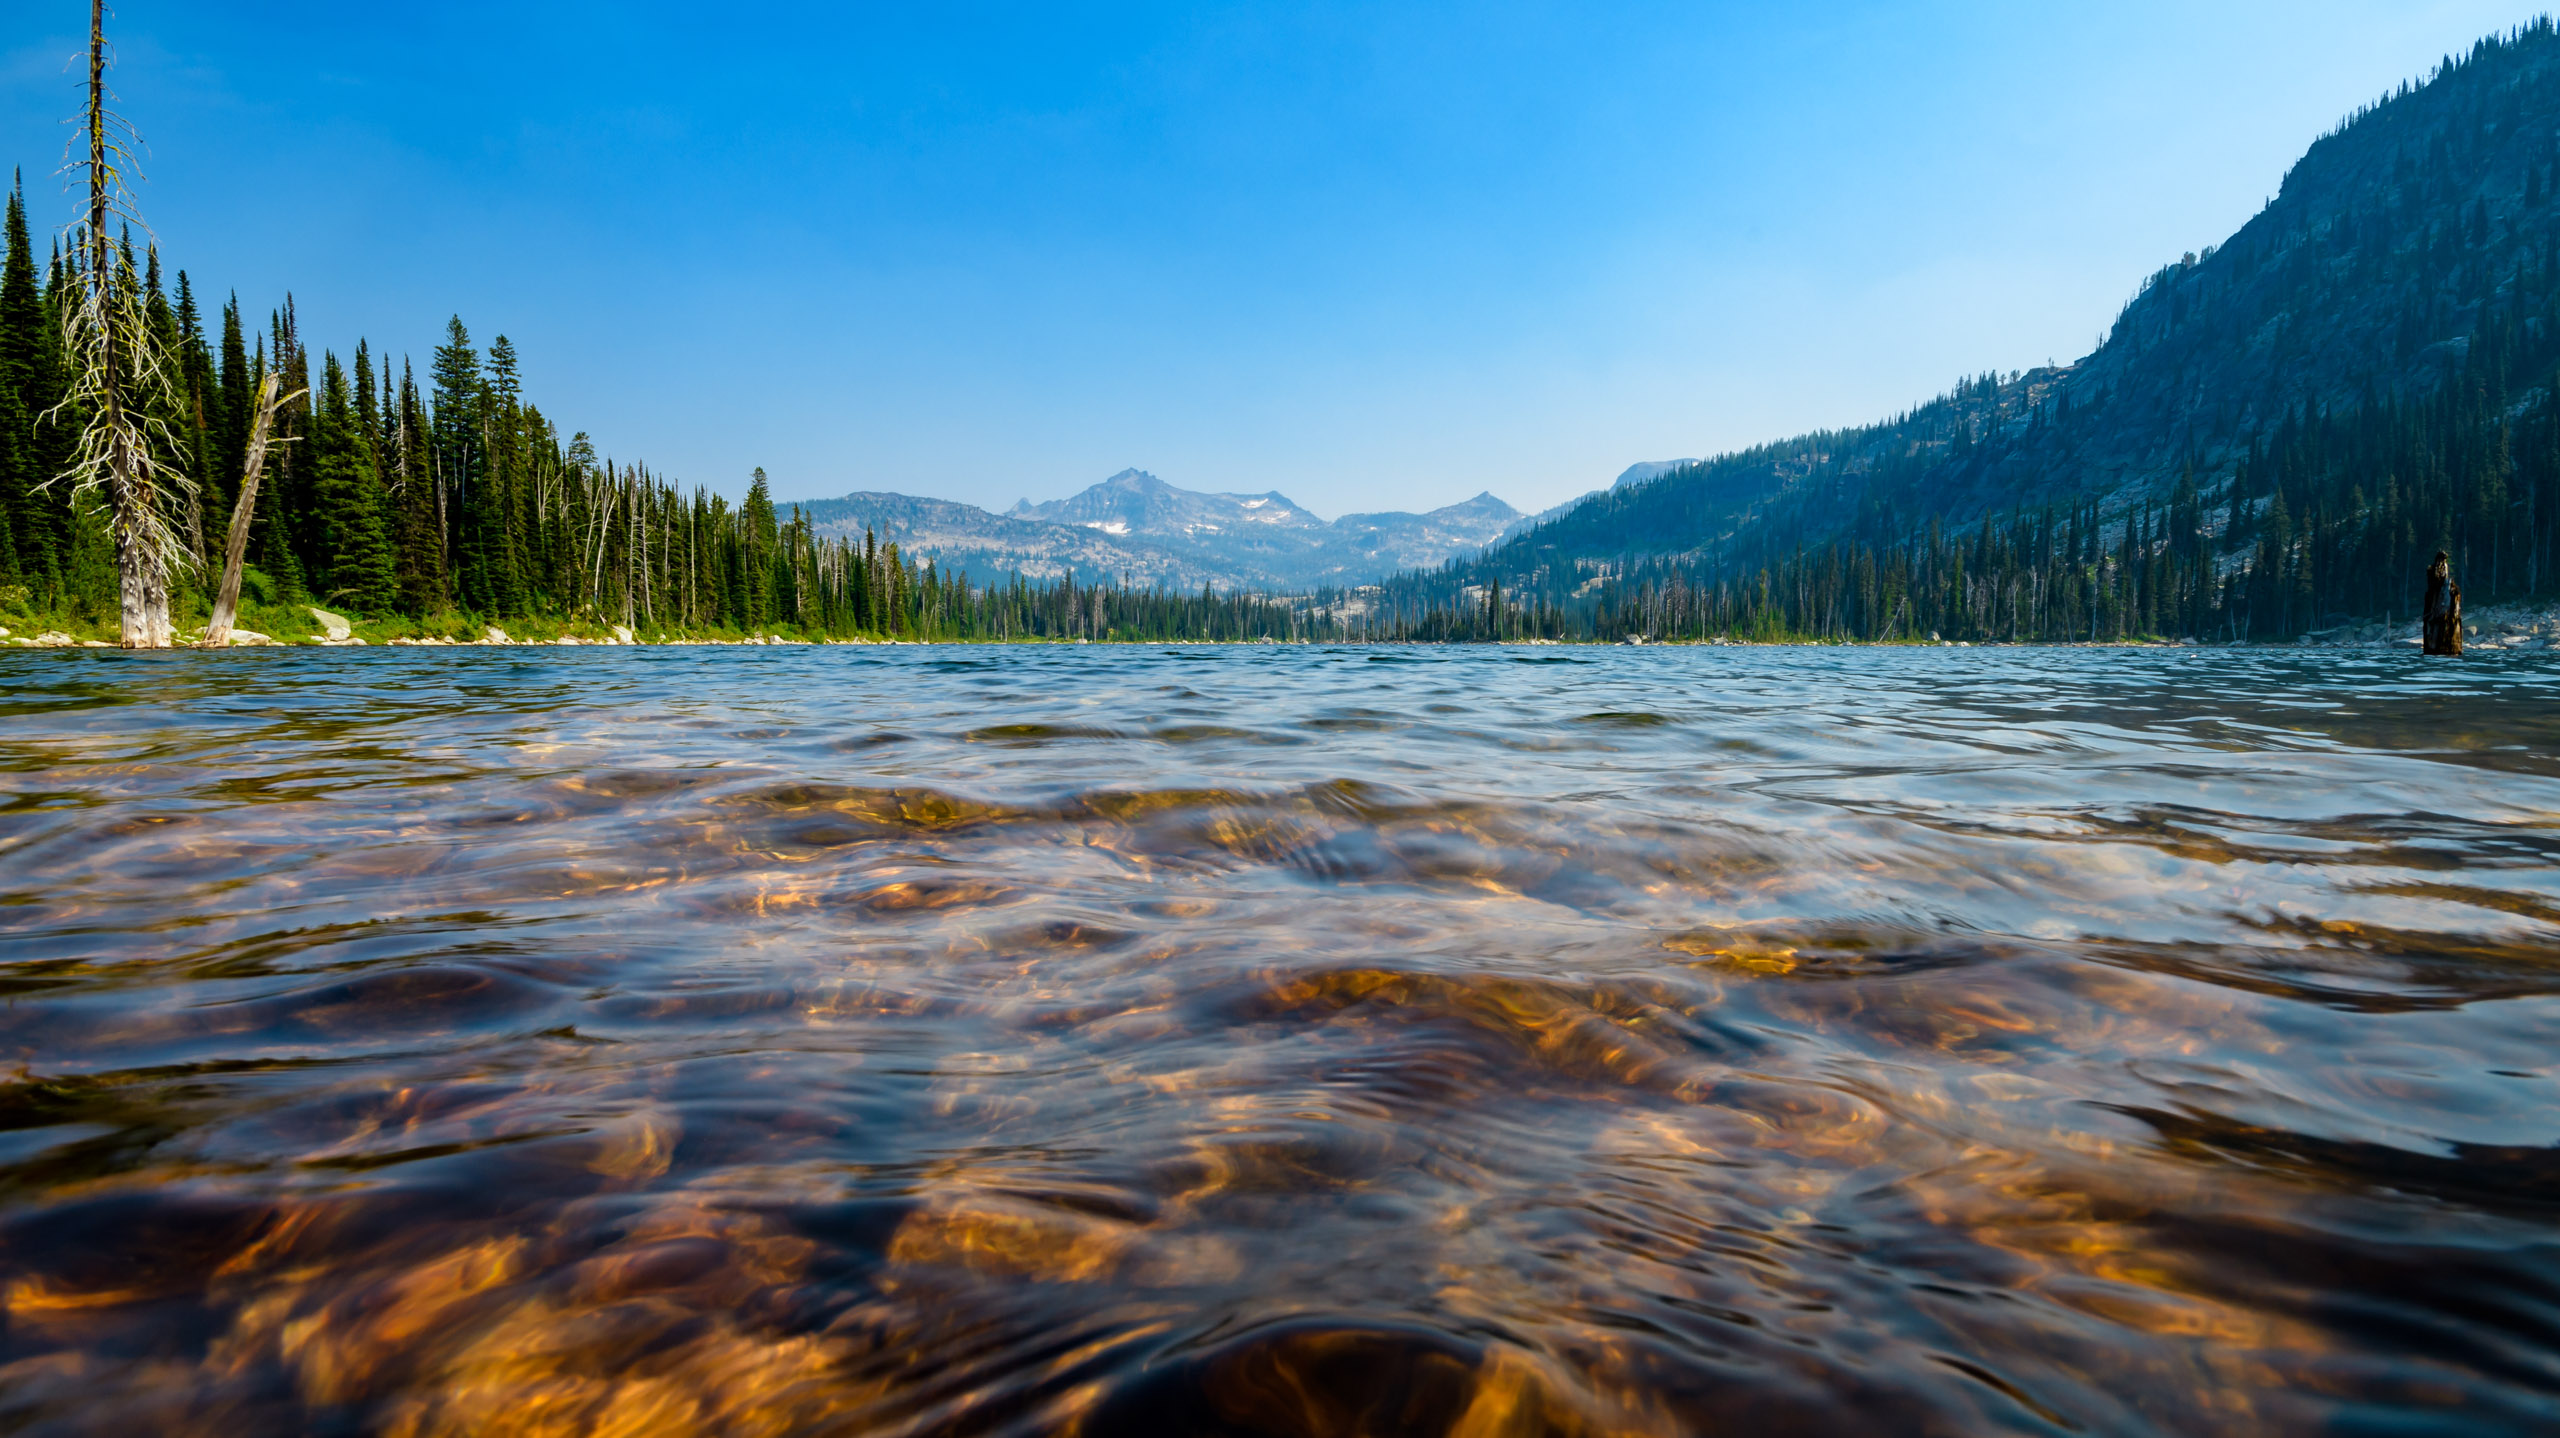 The waters of Fish Lake